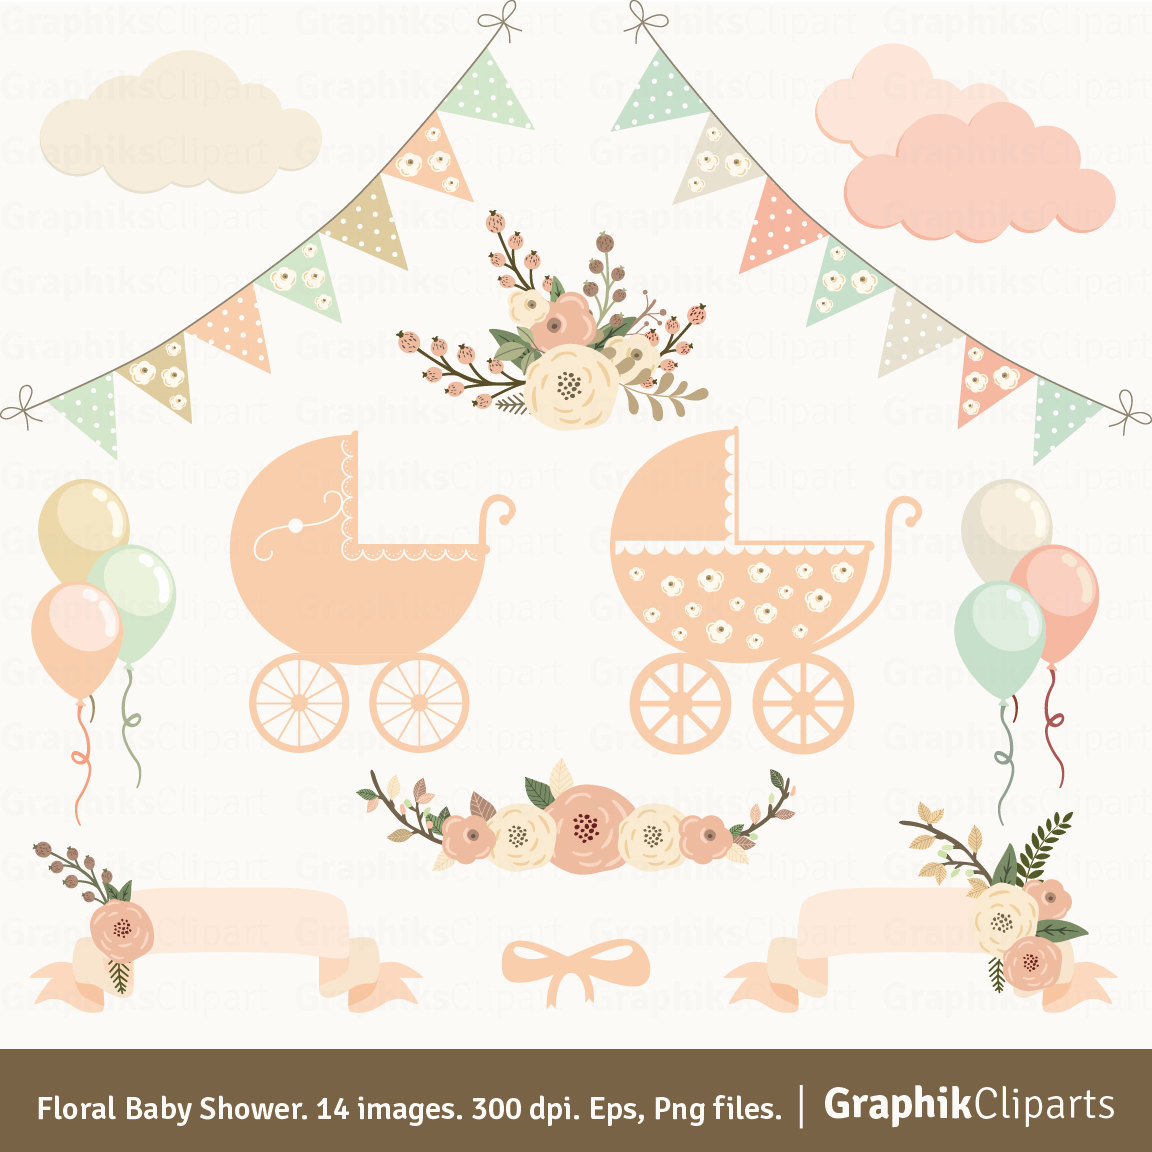 Rustic baby shower clipart png black and white download Rustic clipart baby shower - 199 transparent clip arts ... png black and white download